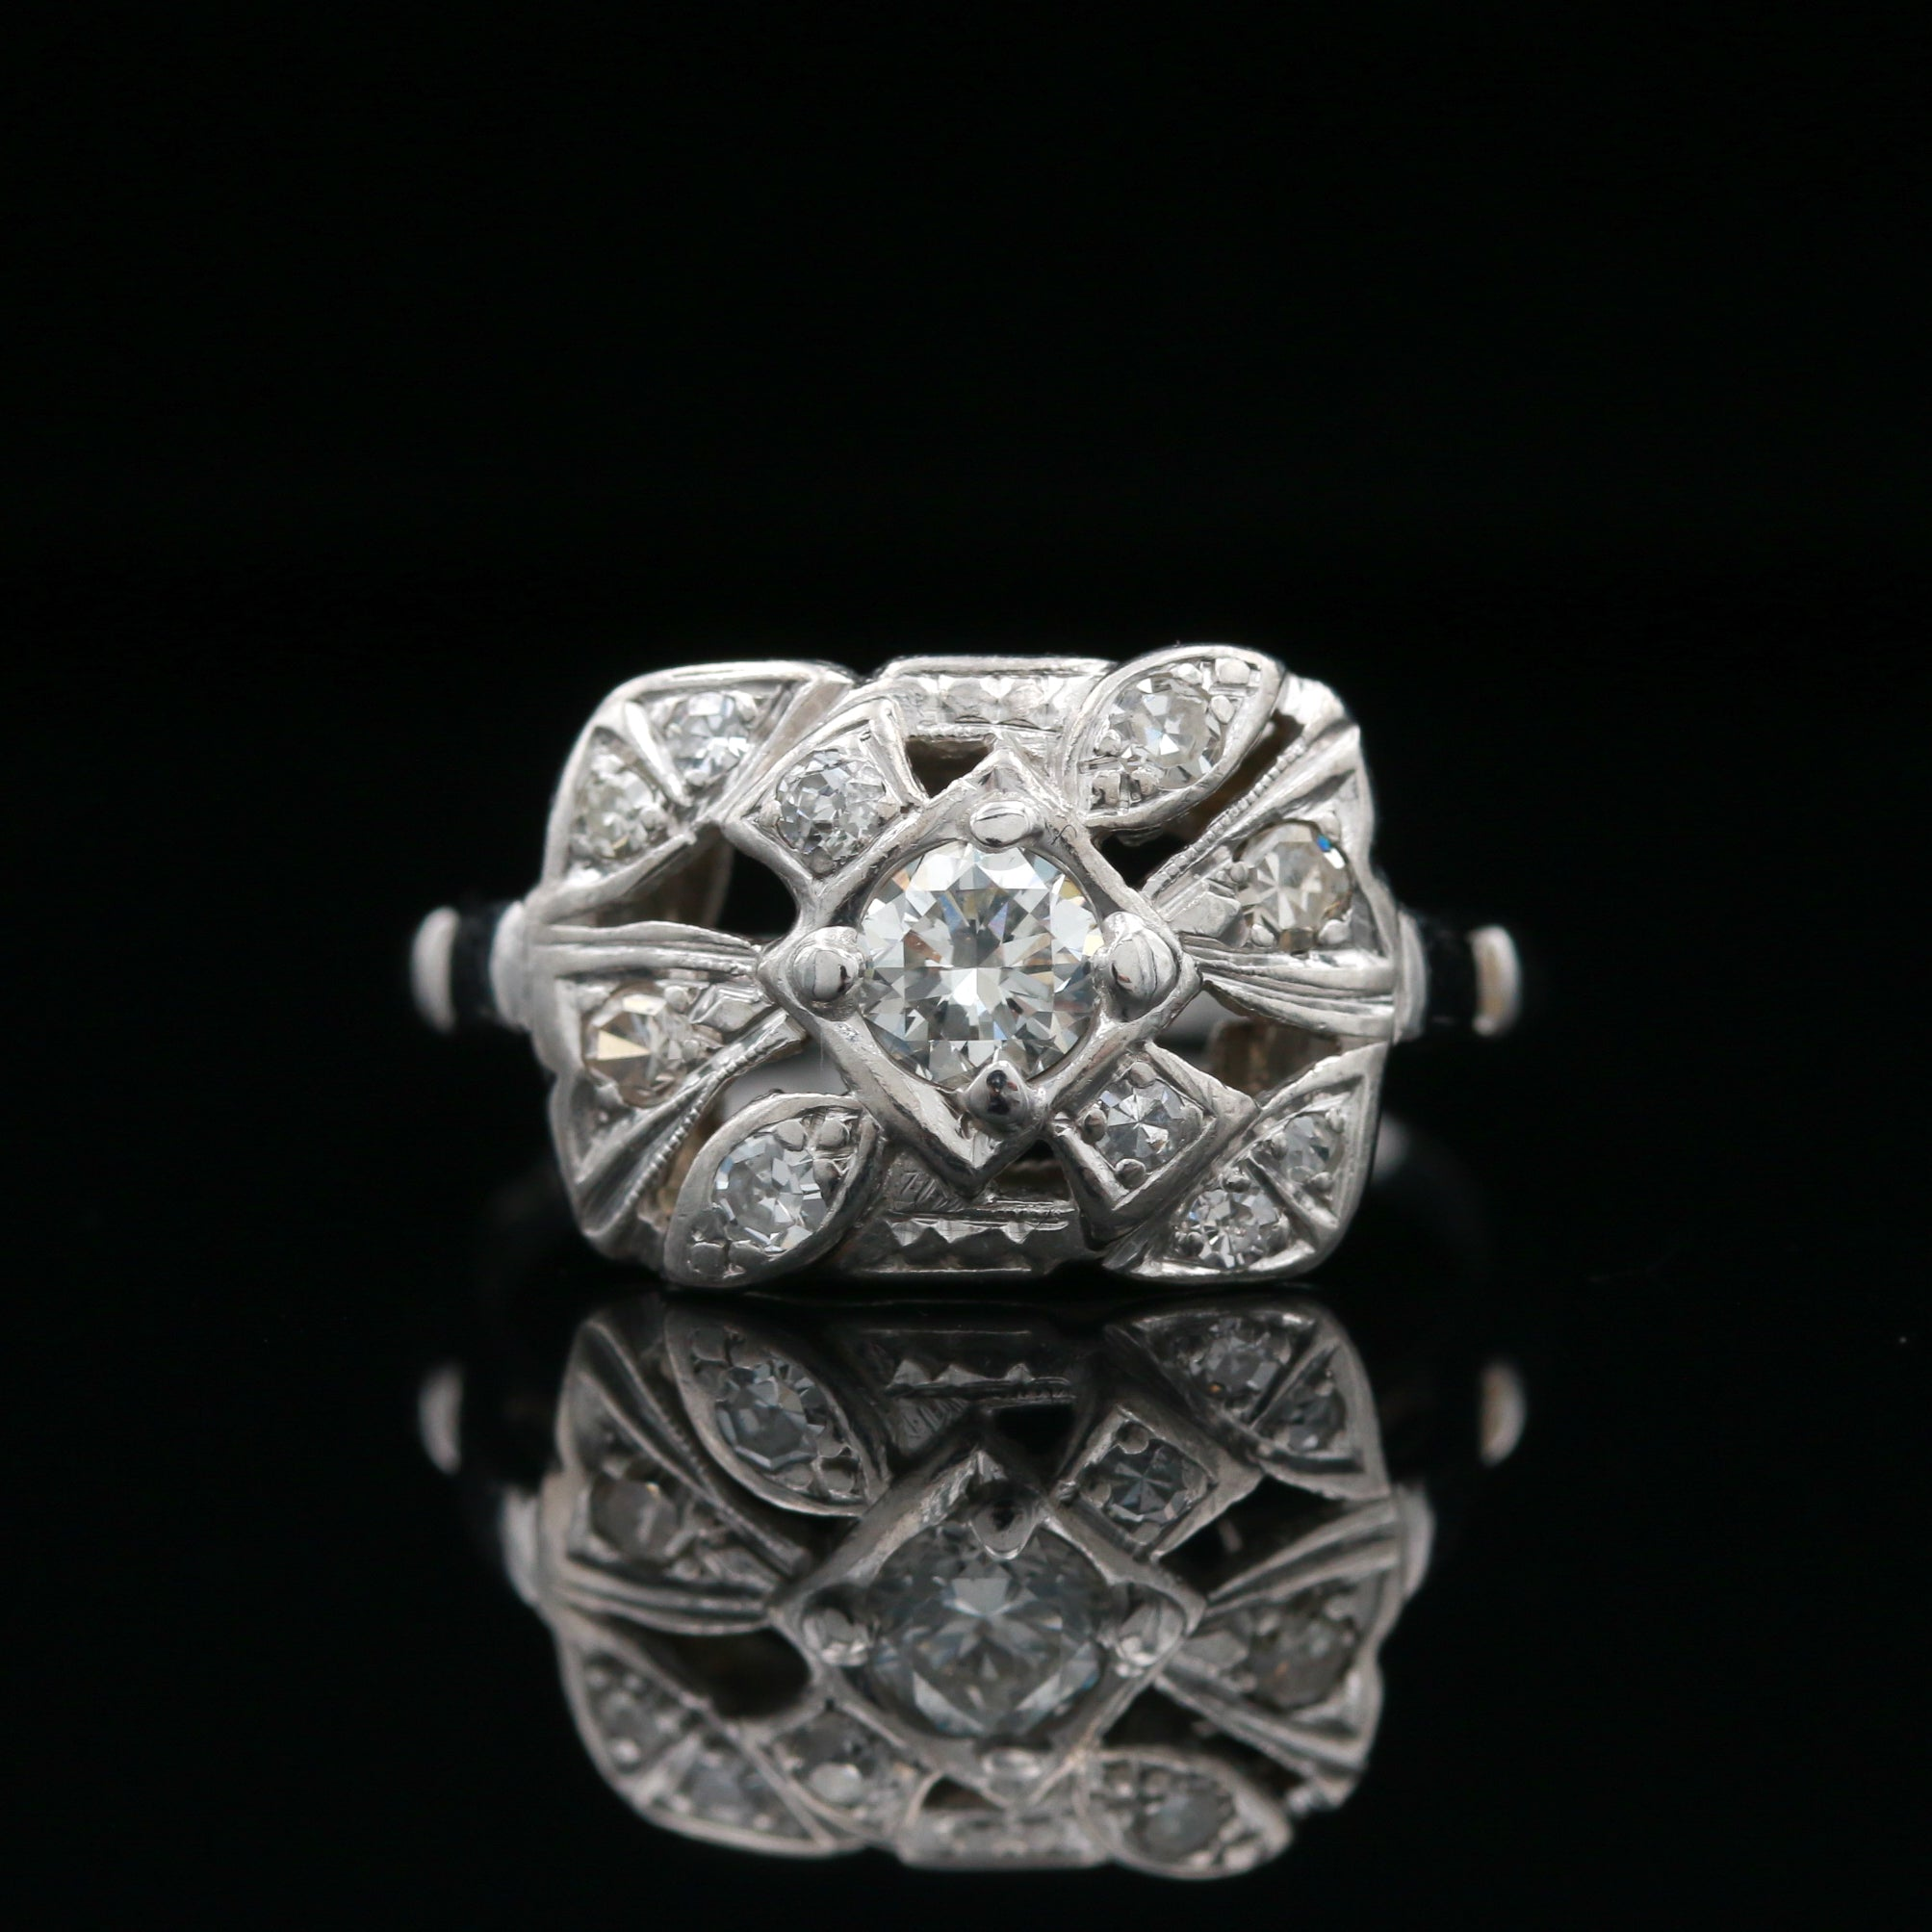 Vintage Hand Carved White Gold Diamond Ring